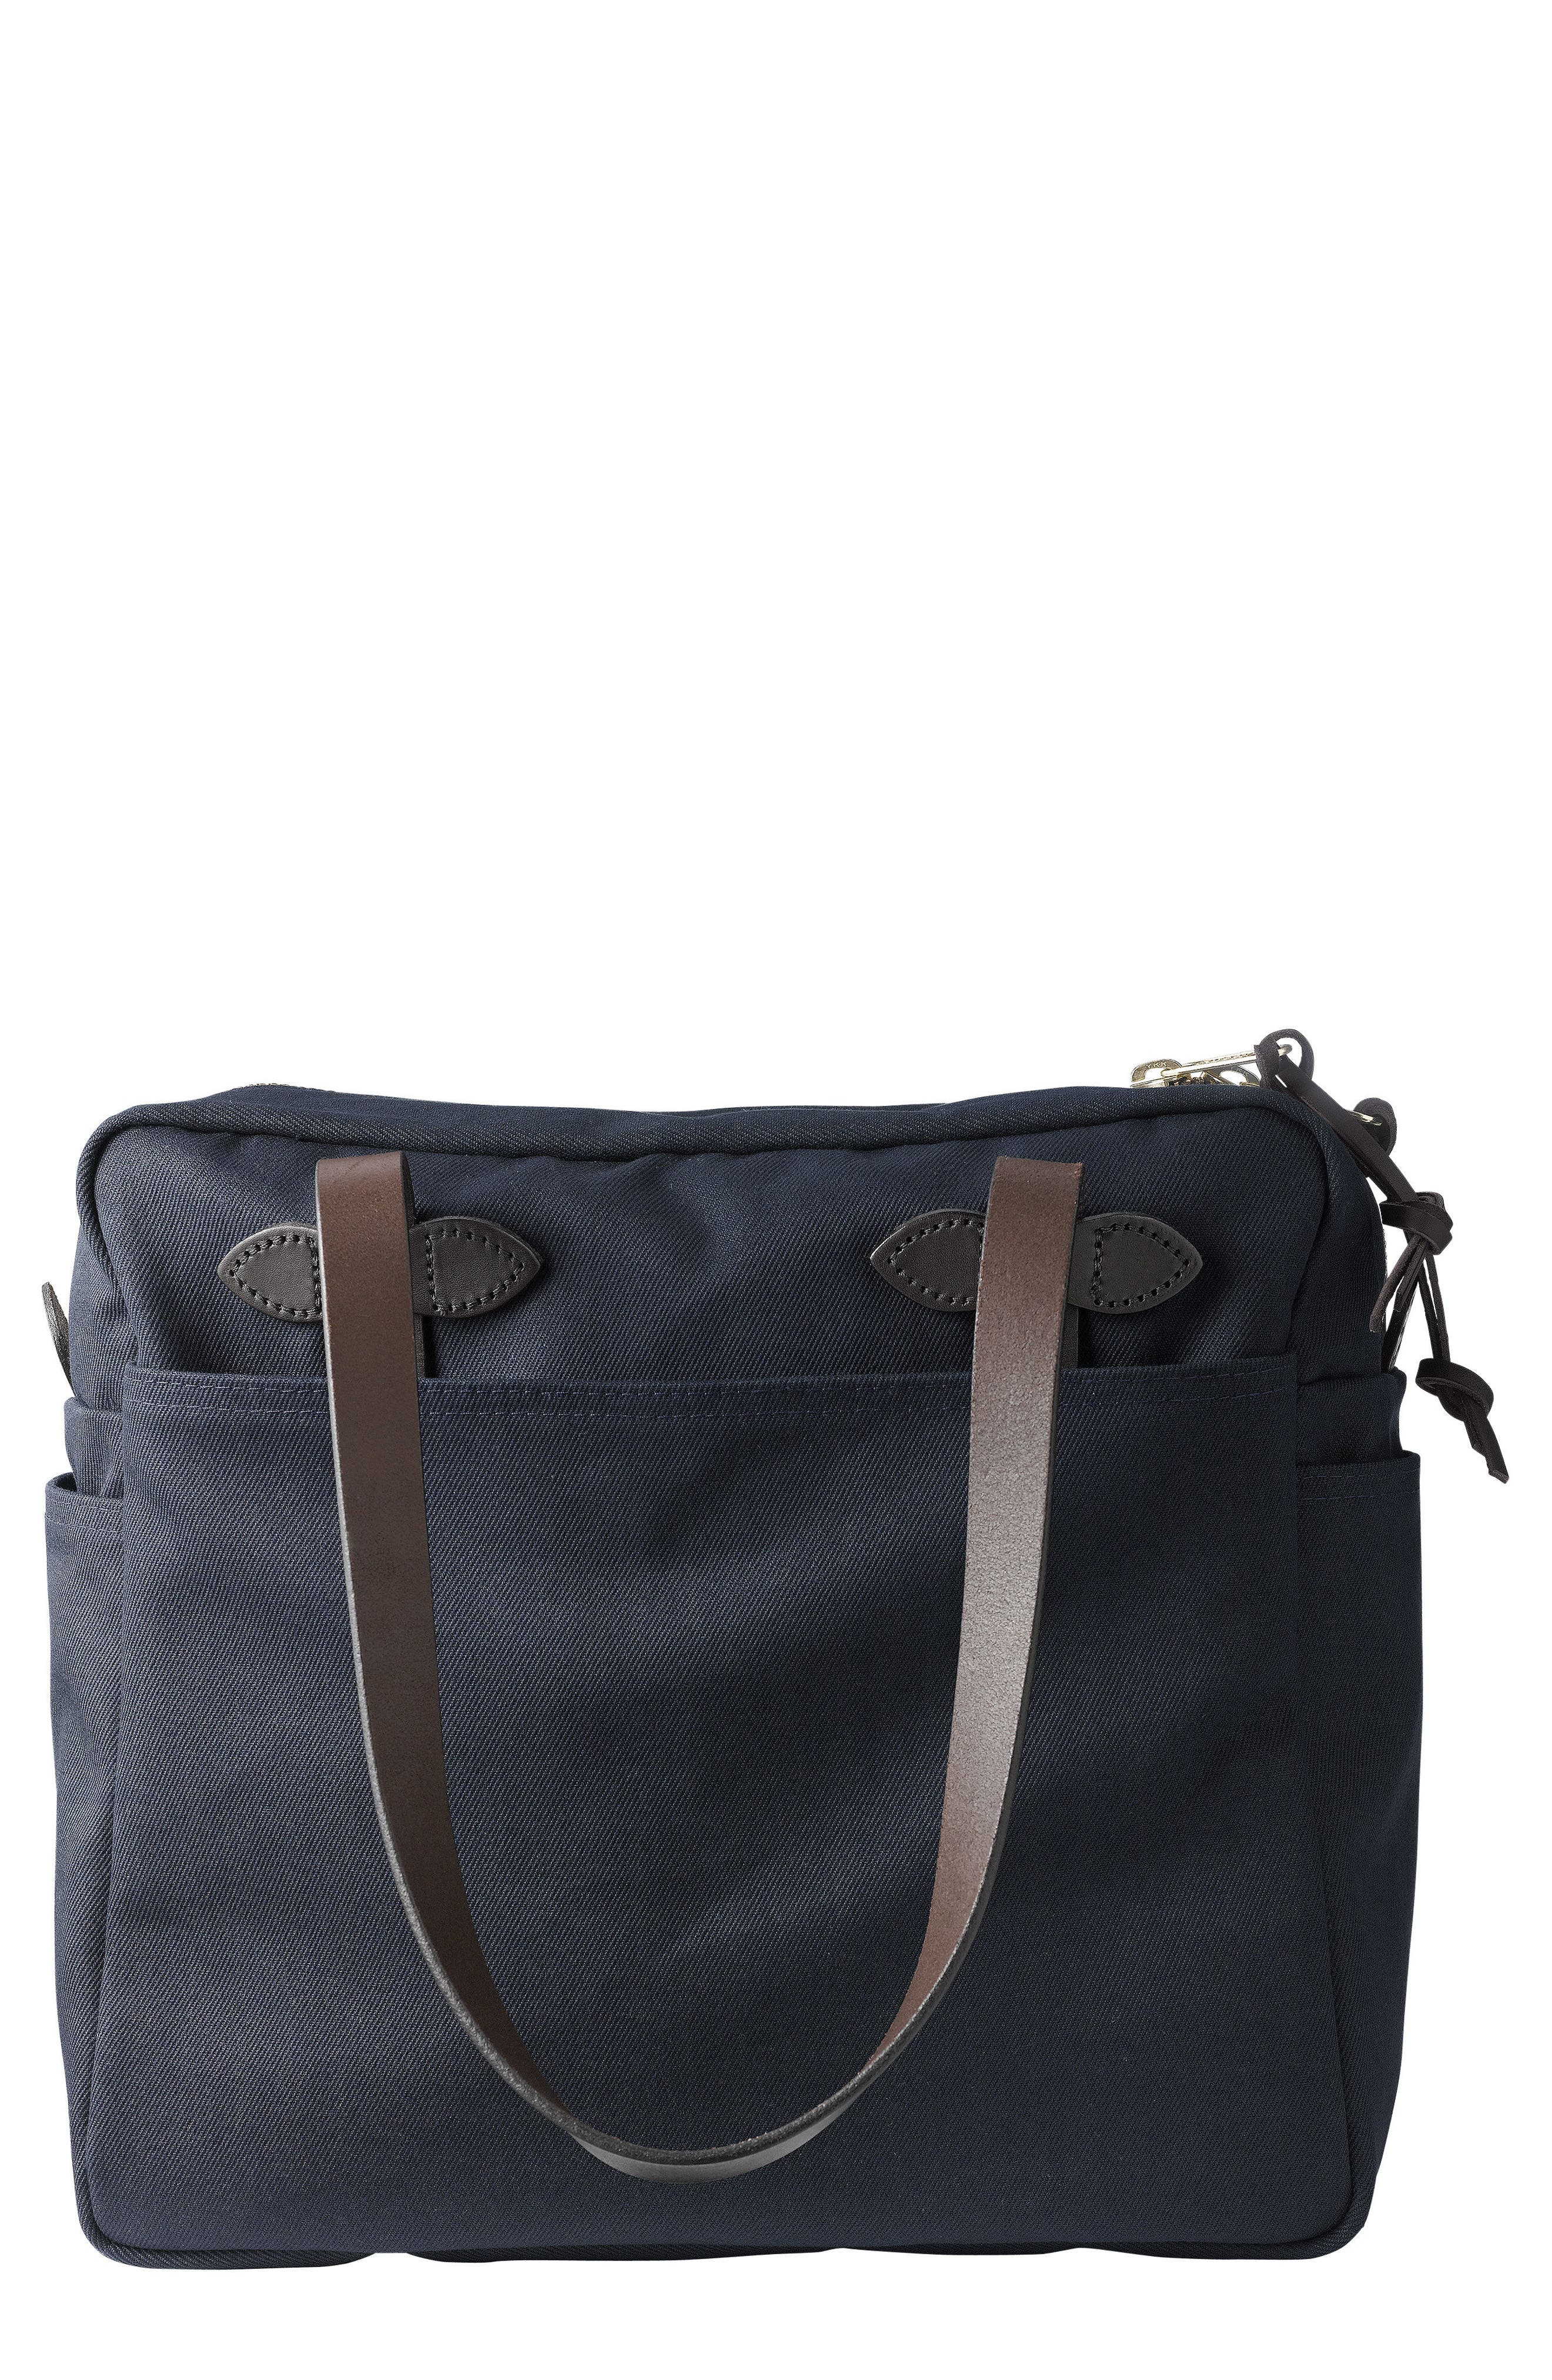 FILSON RUGGED TWILL ZIP TOTE BAG - BLUE